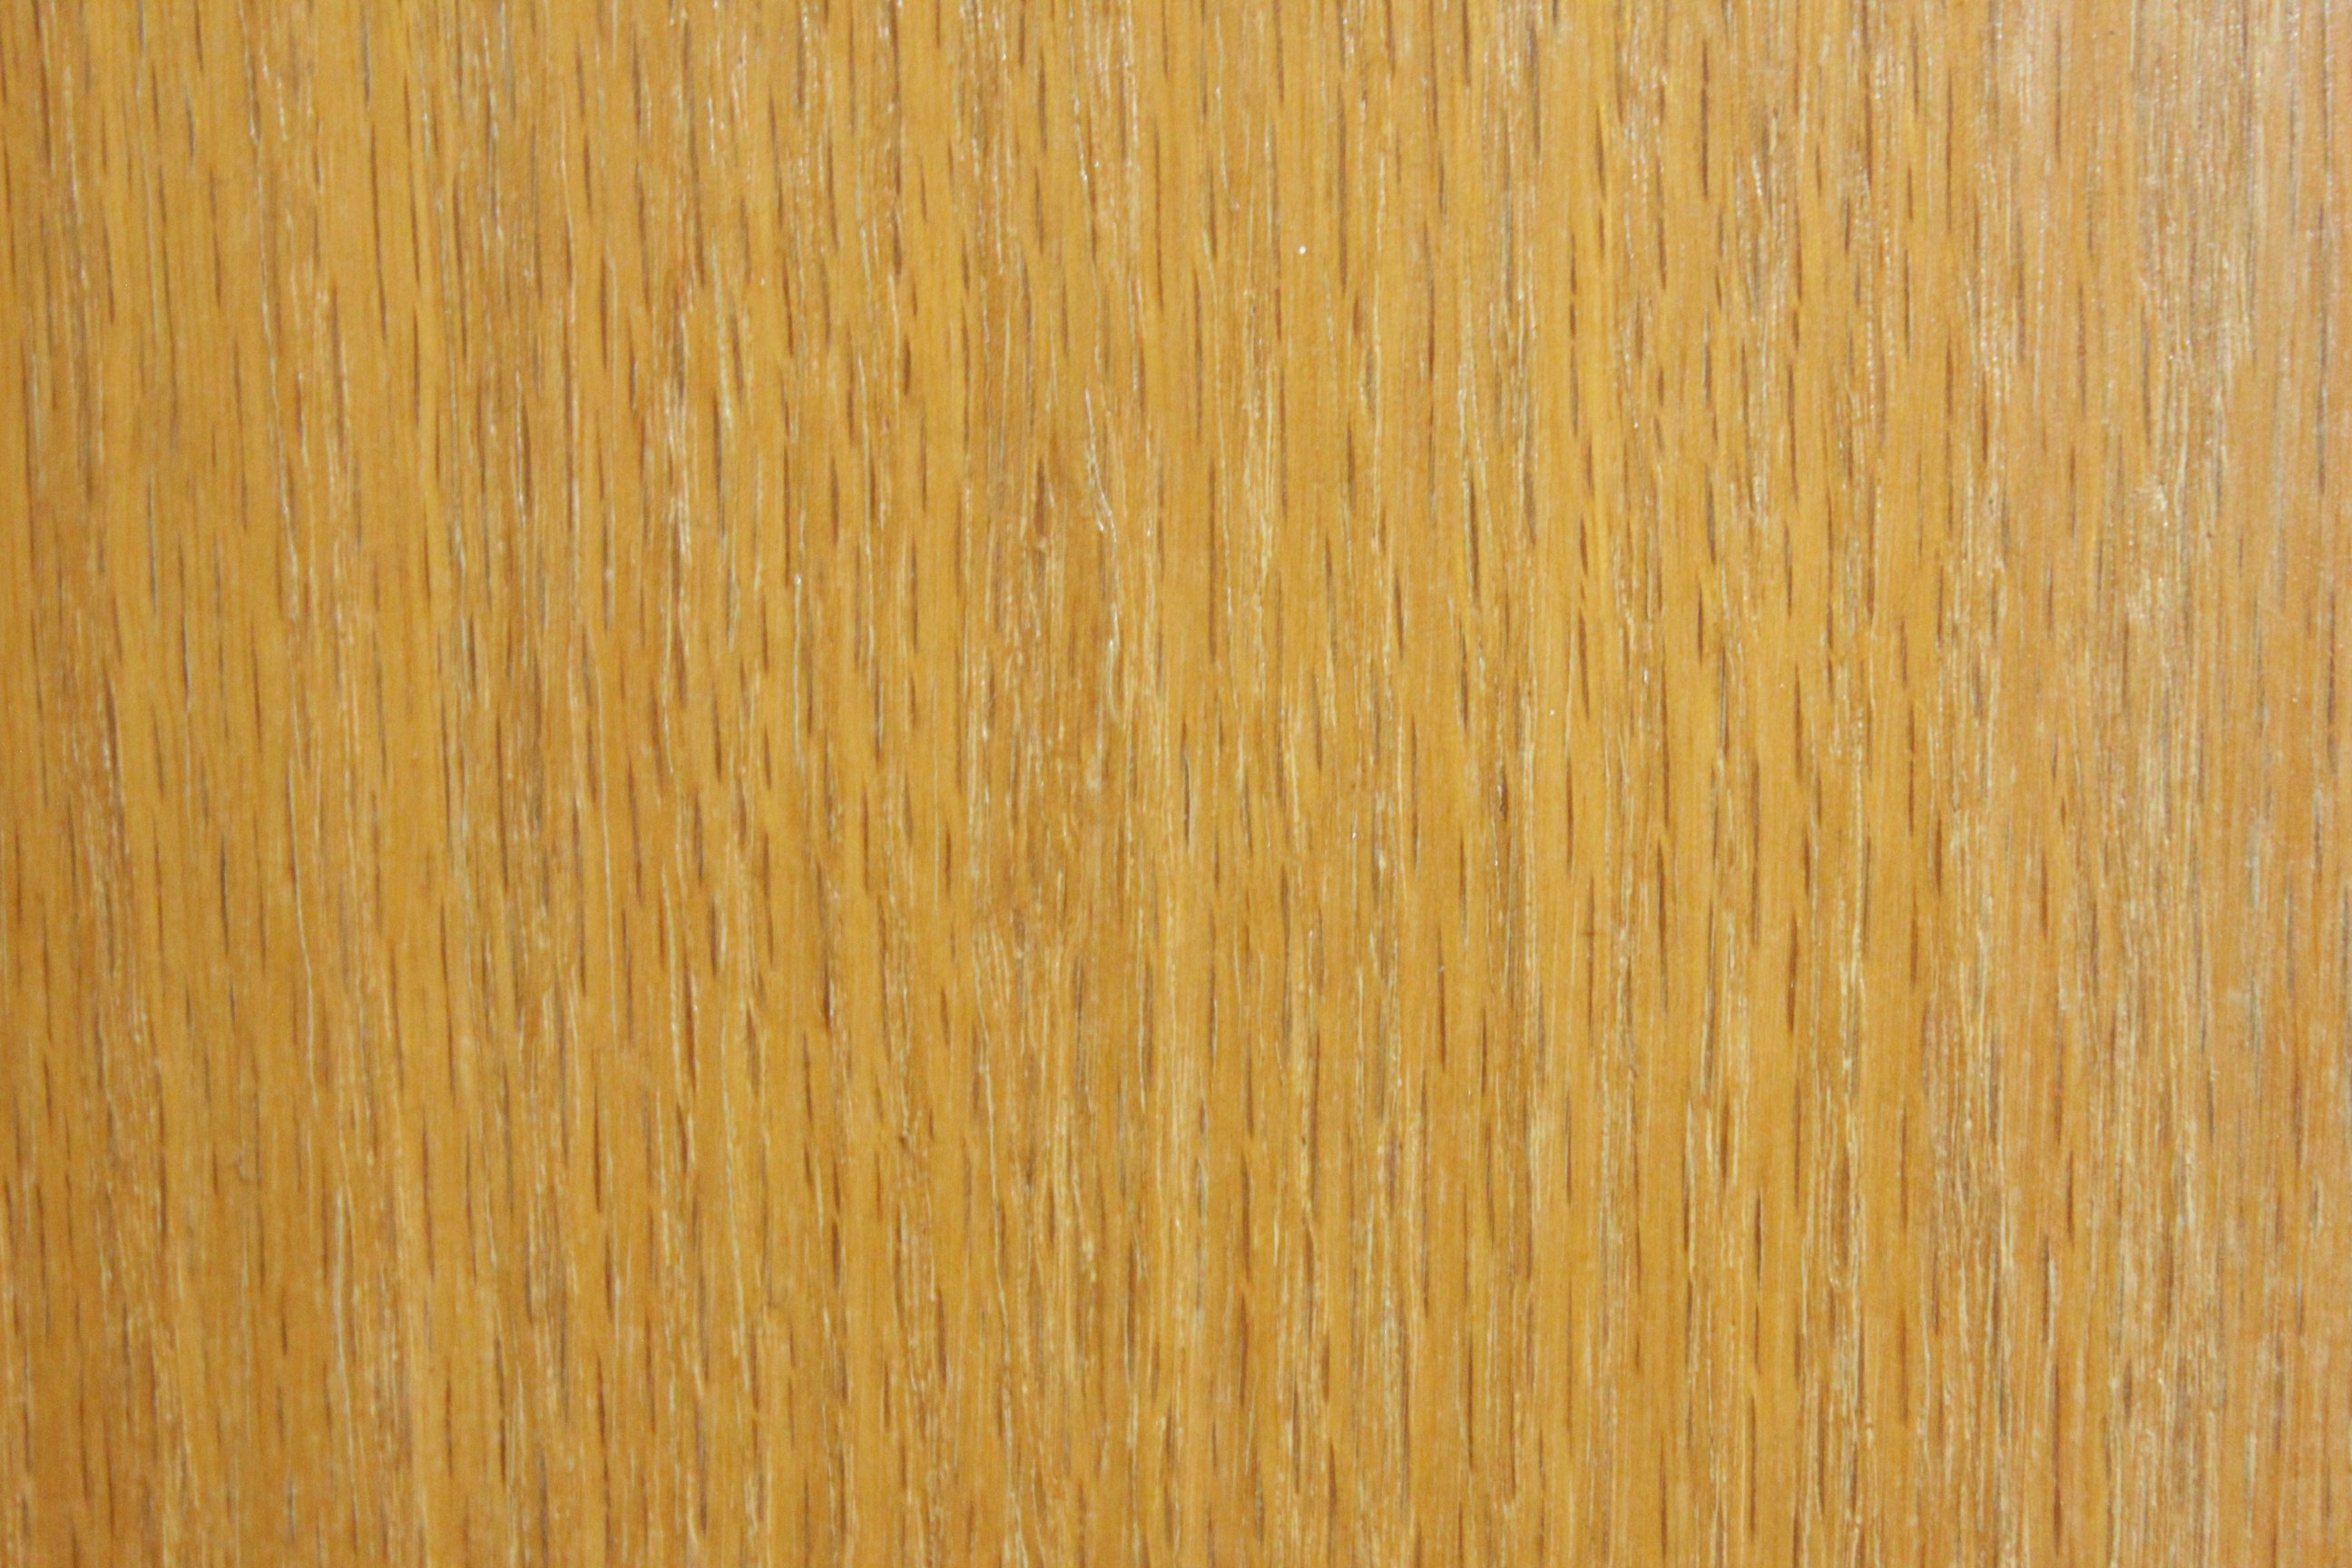 Orange Color Wallpaper Hd Wood Cupboard Texture Image Free Stock Photo Public